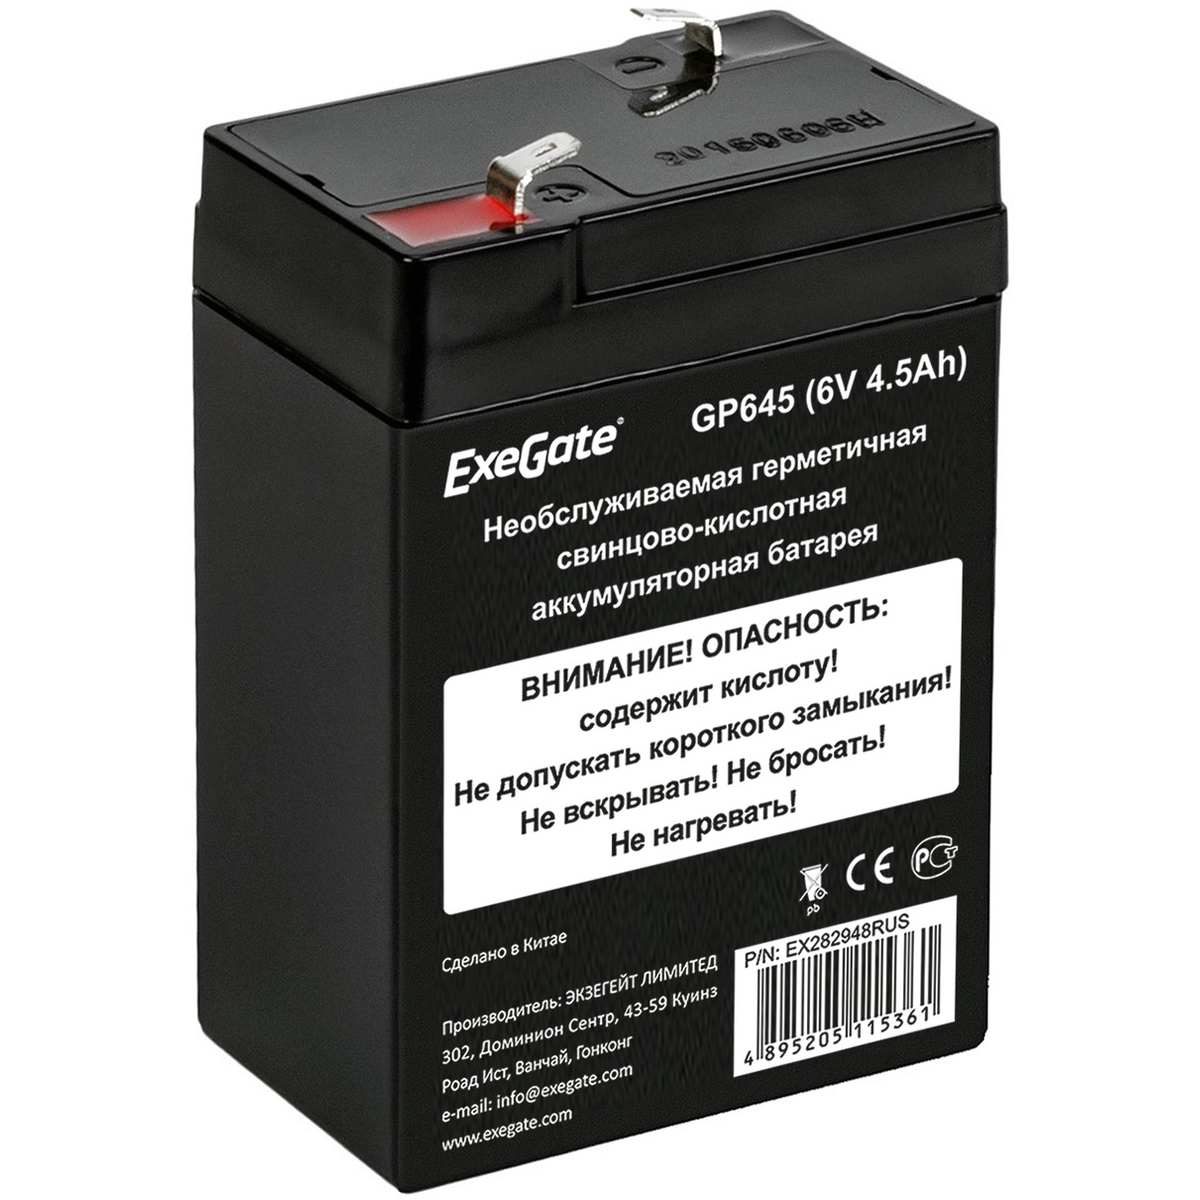 Battery ExeGate GP645